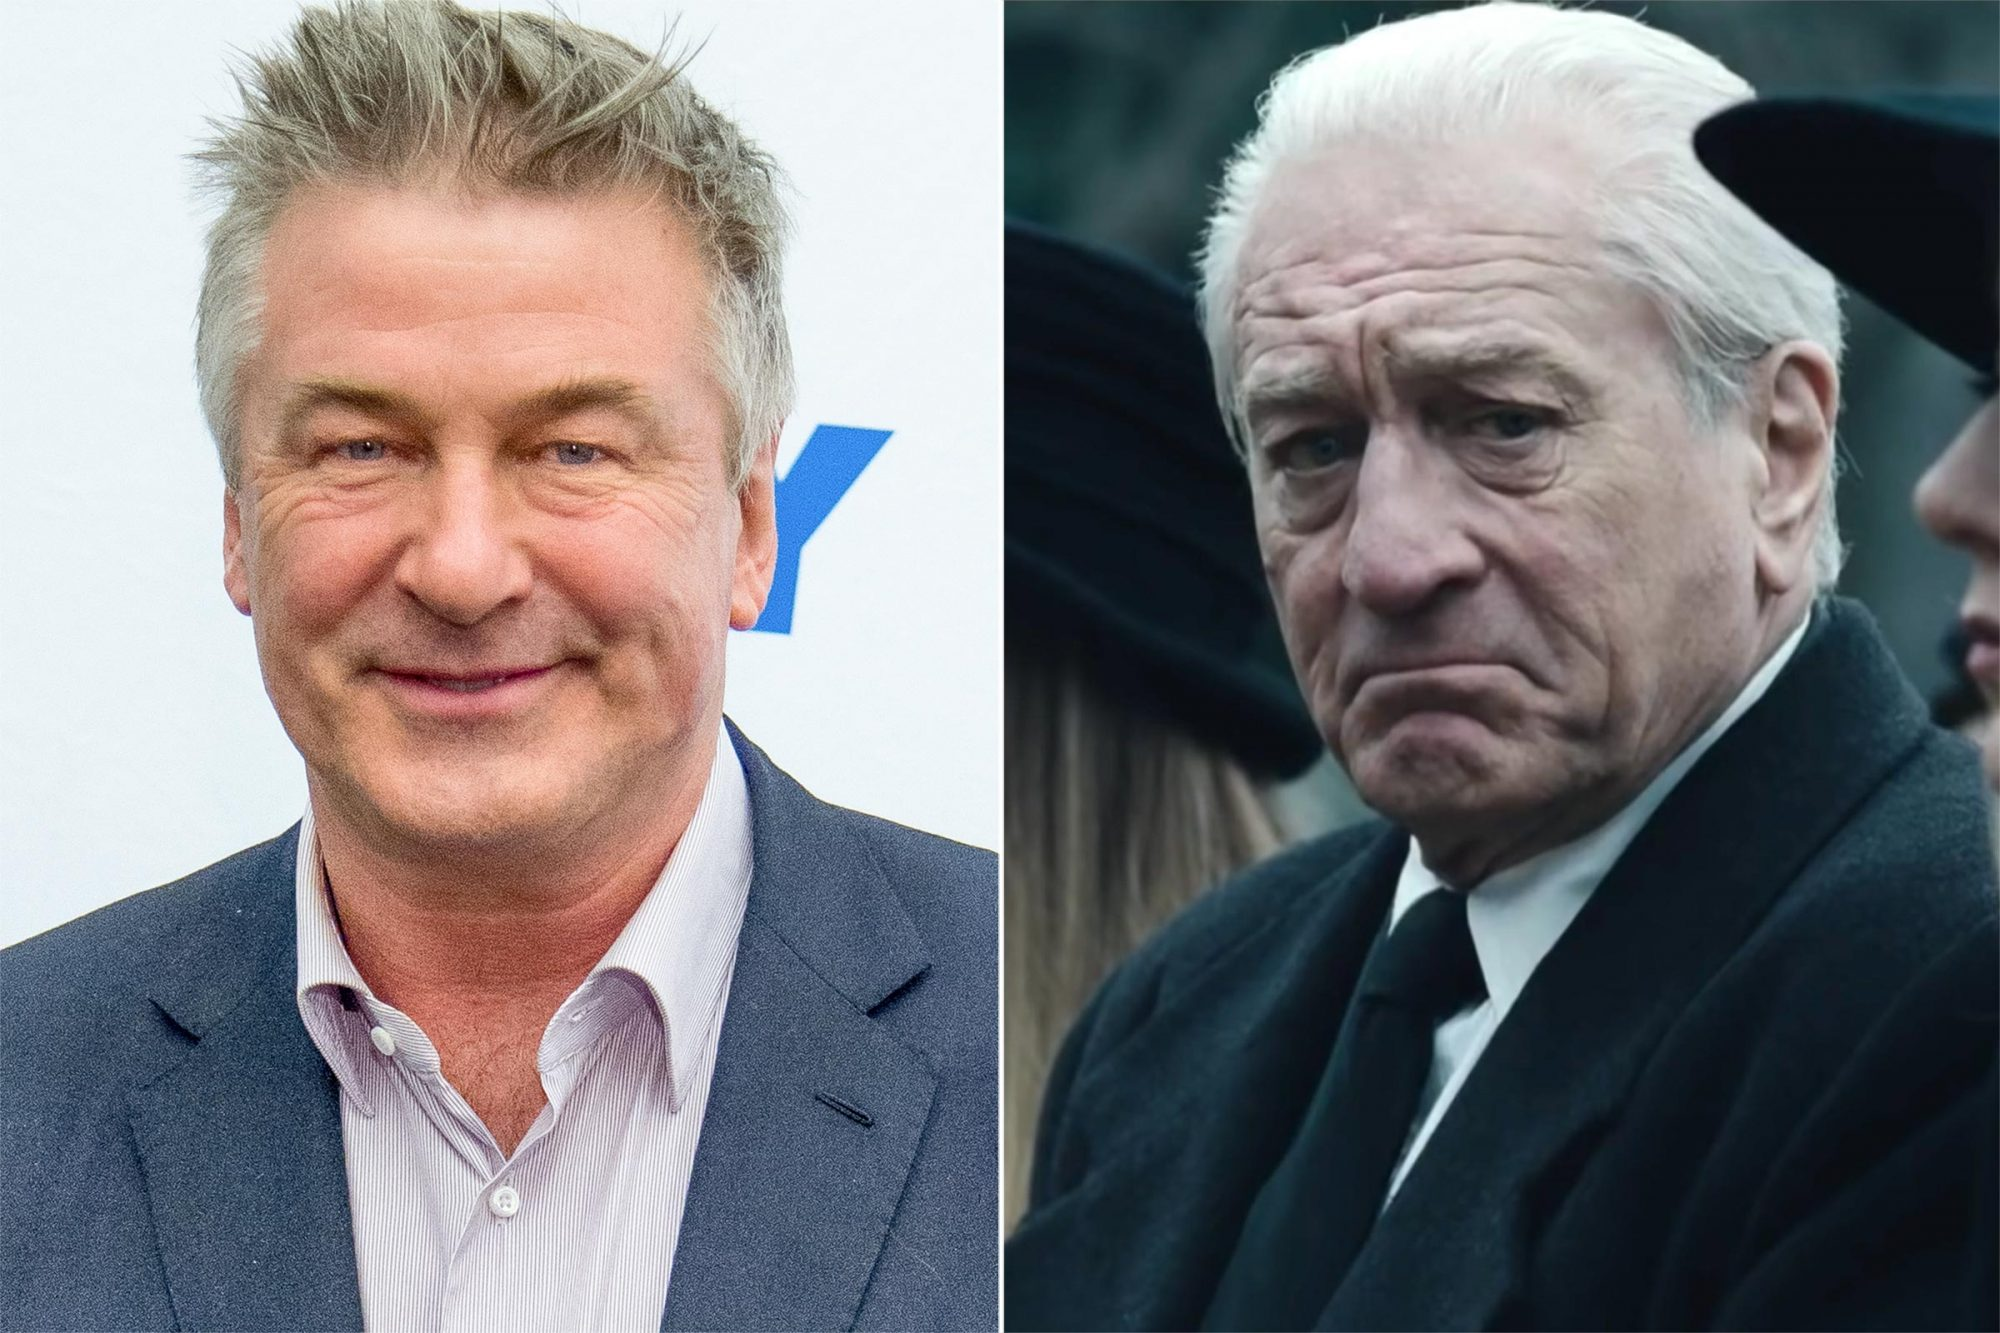 Alec Baldwin / The Irishman